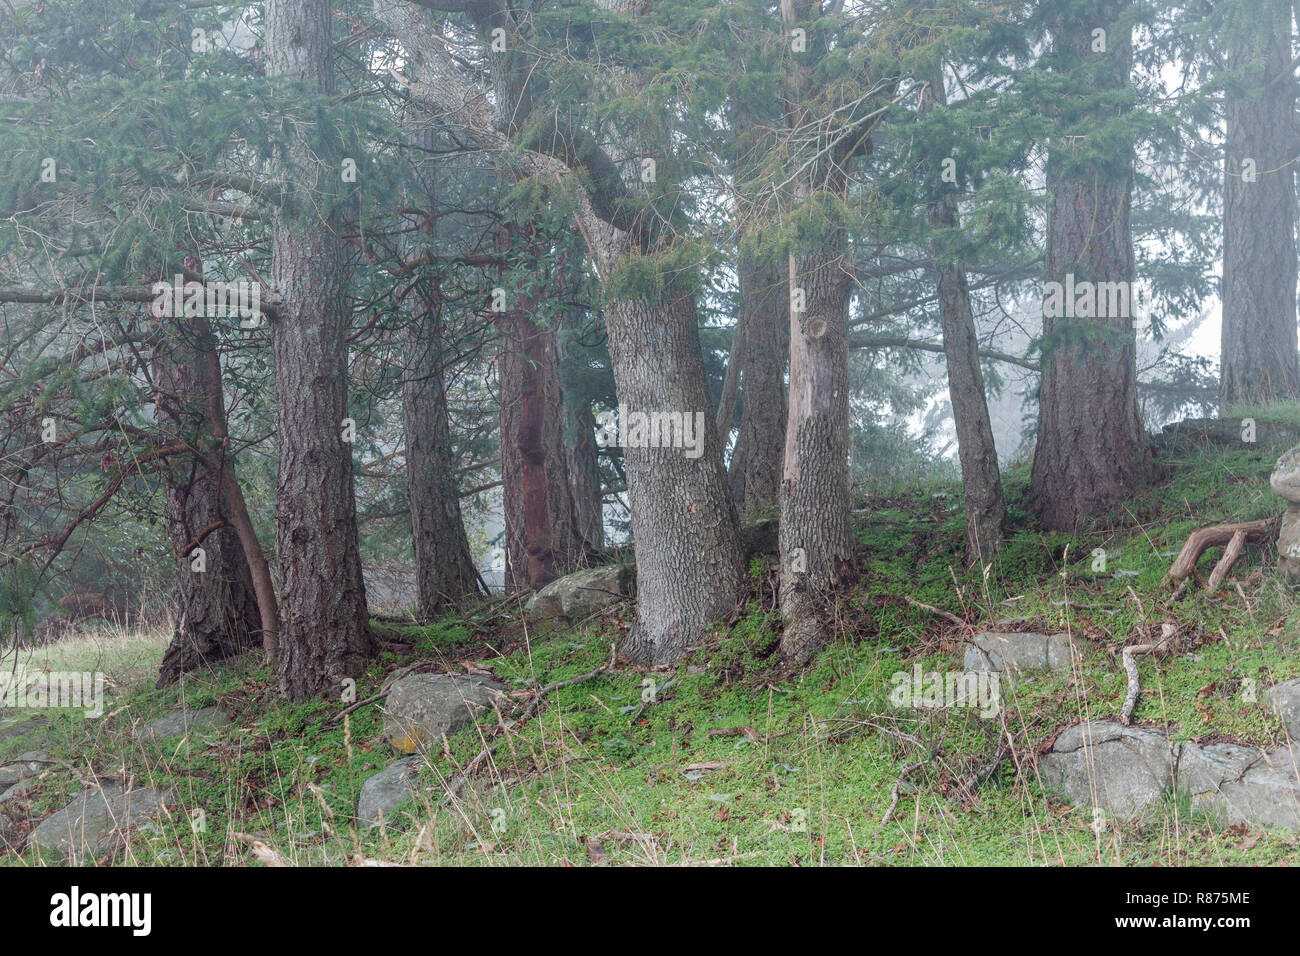 Morning fog drifts through a grove of Douglas fir trees growing on a grassy hillside in winter, in a forest park in coastal British Columbia. - Stock Image